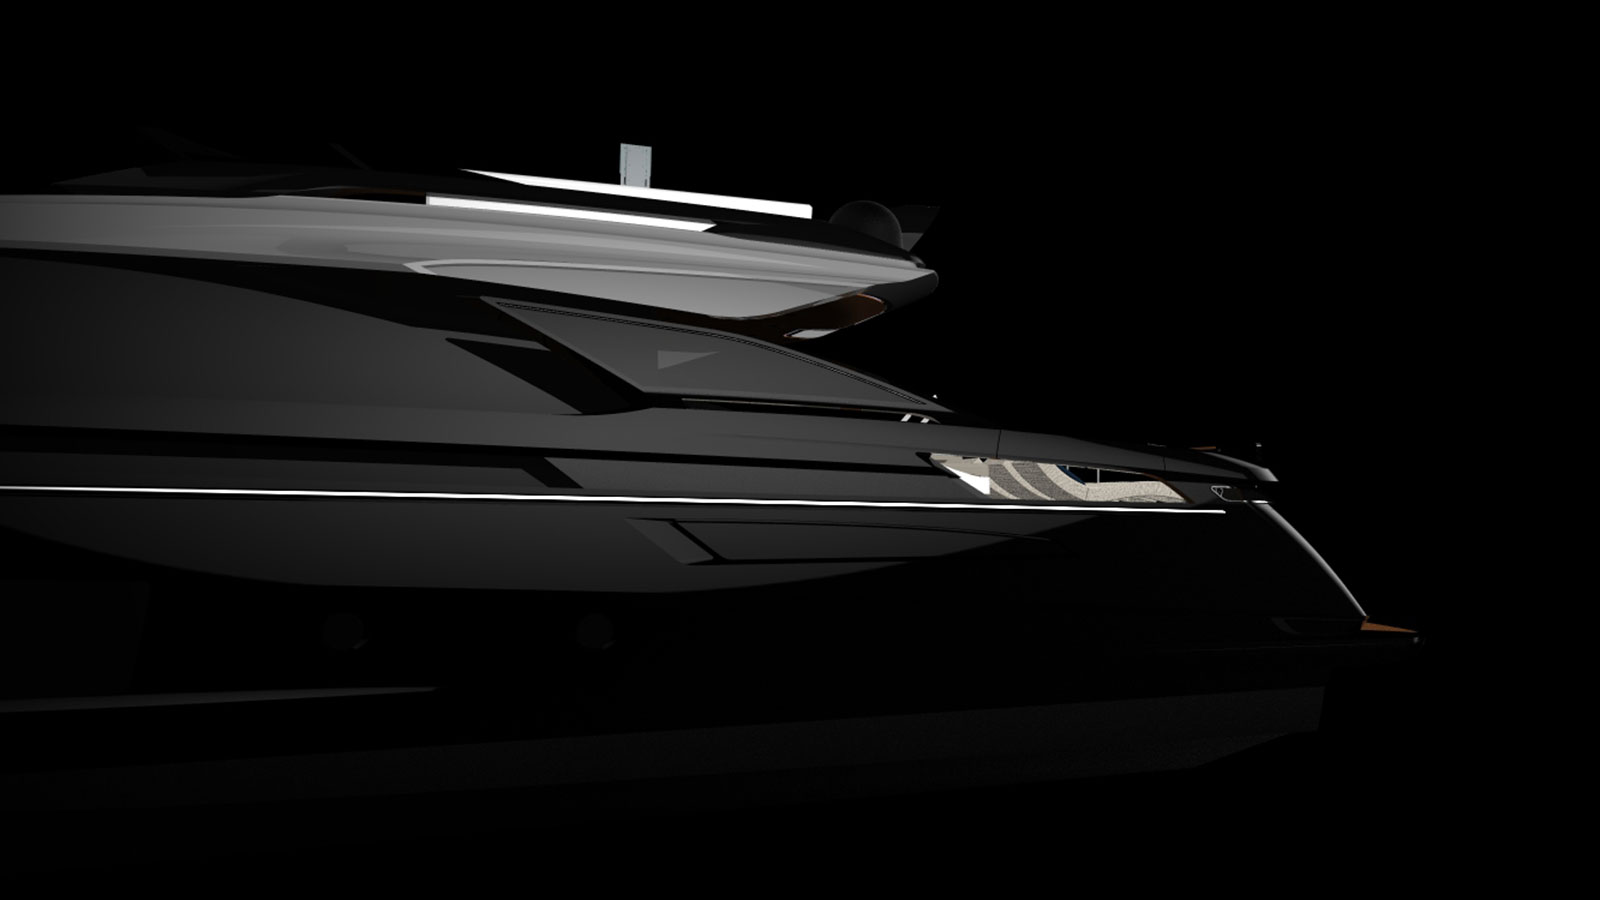 Azimut Grande S10 Yacht Side View